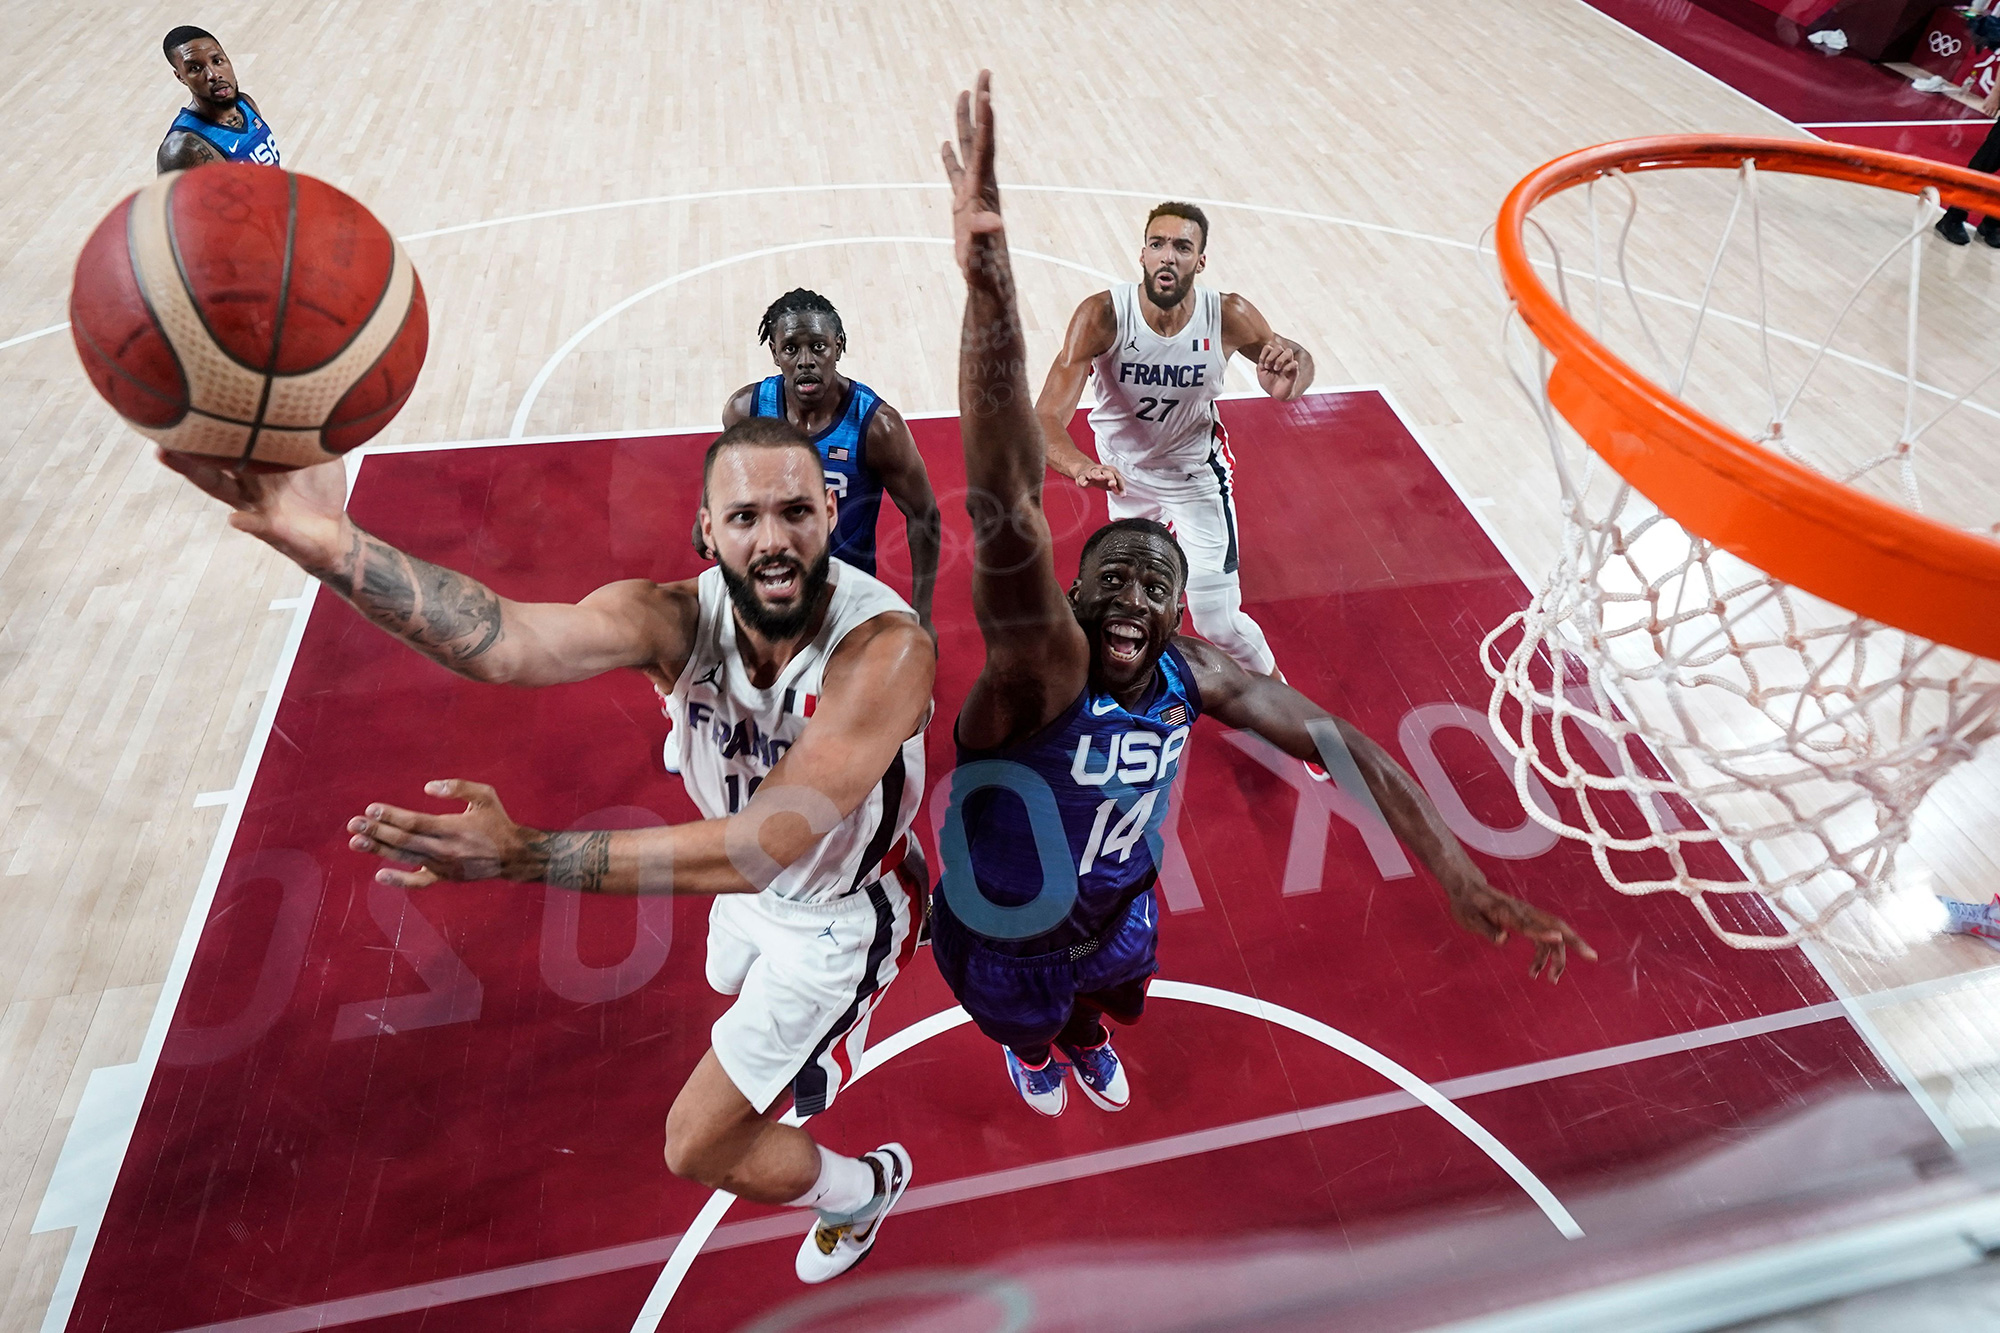 France's Evan Fournier goes for the basket past United States' Draymond Jamal Green during a basketball game on Sunday, July 25.